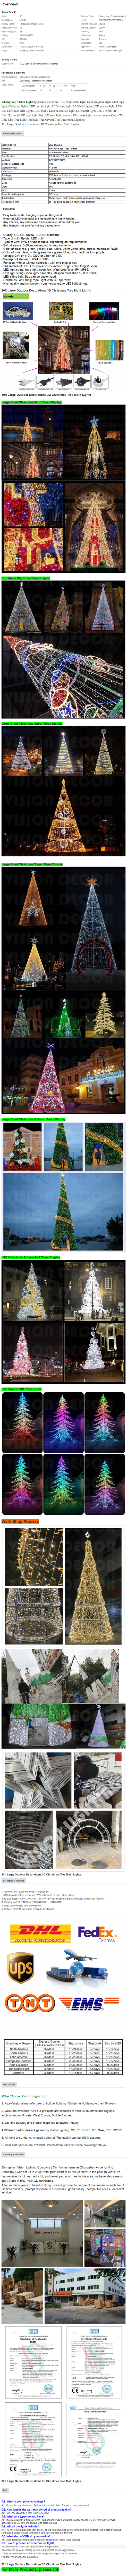 30ft Large Outdoor Decorations 3D Christmas Tree Motif Lights